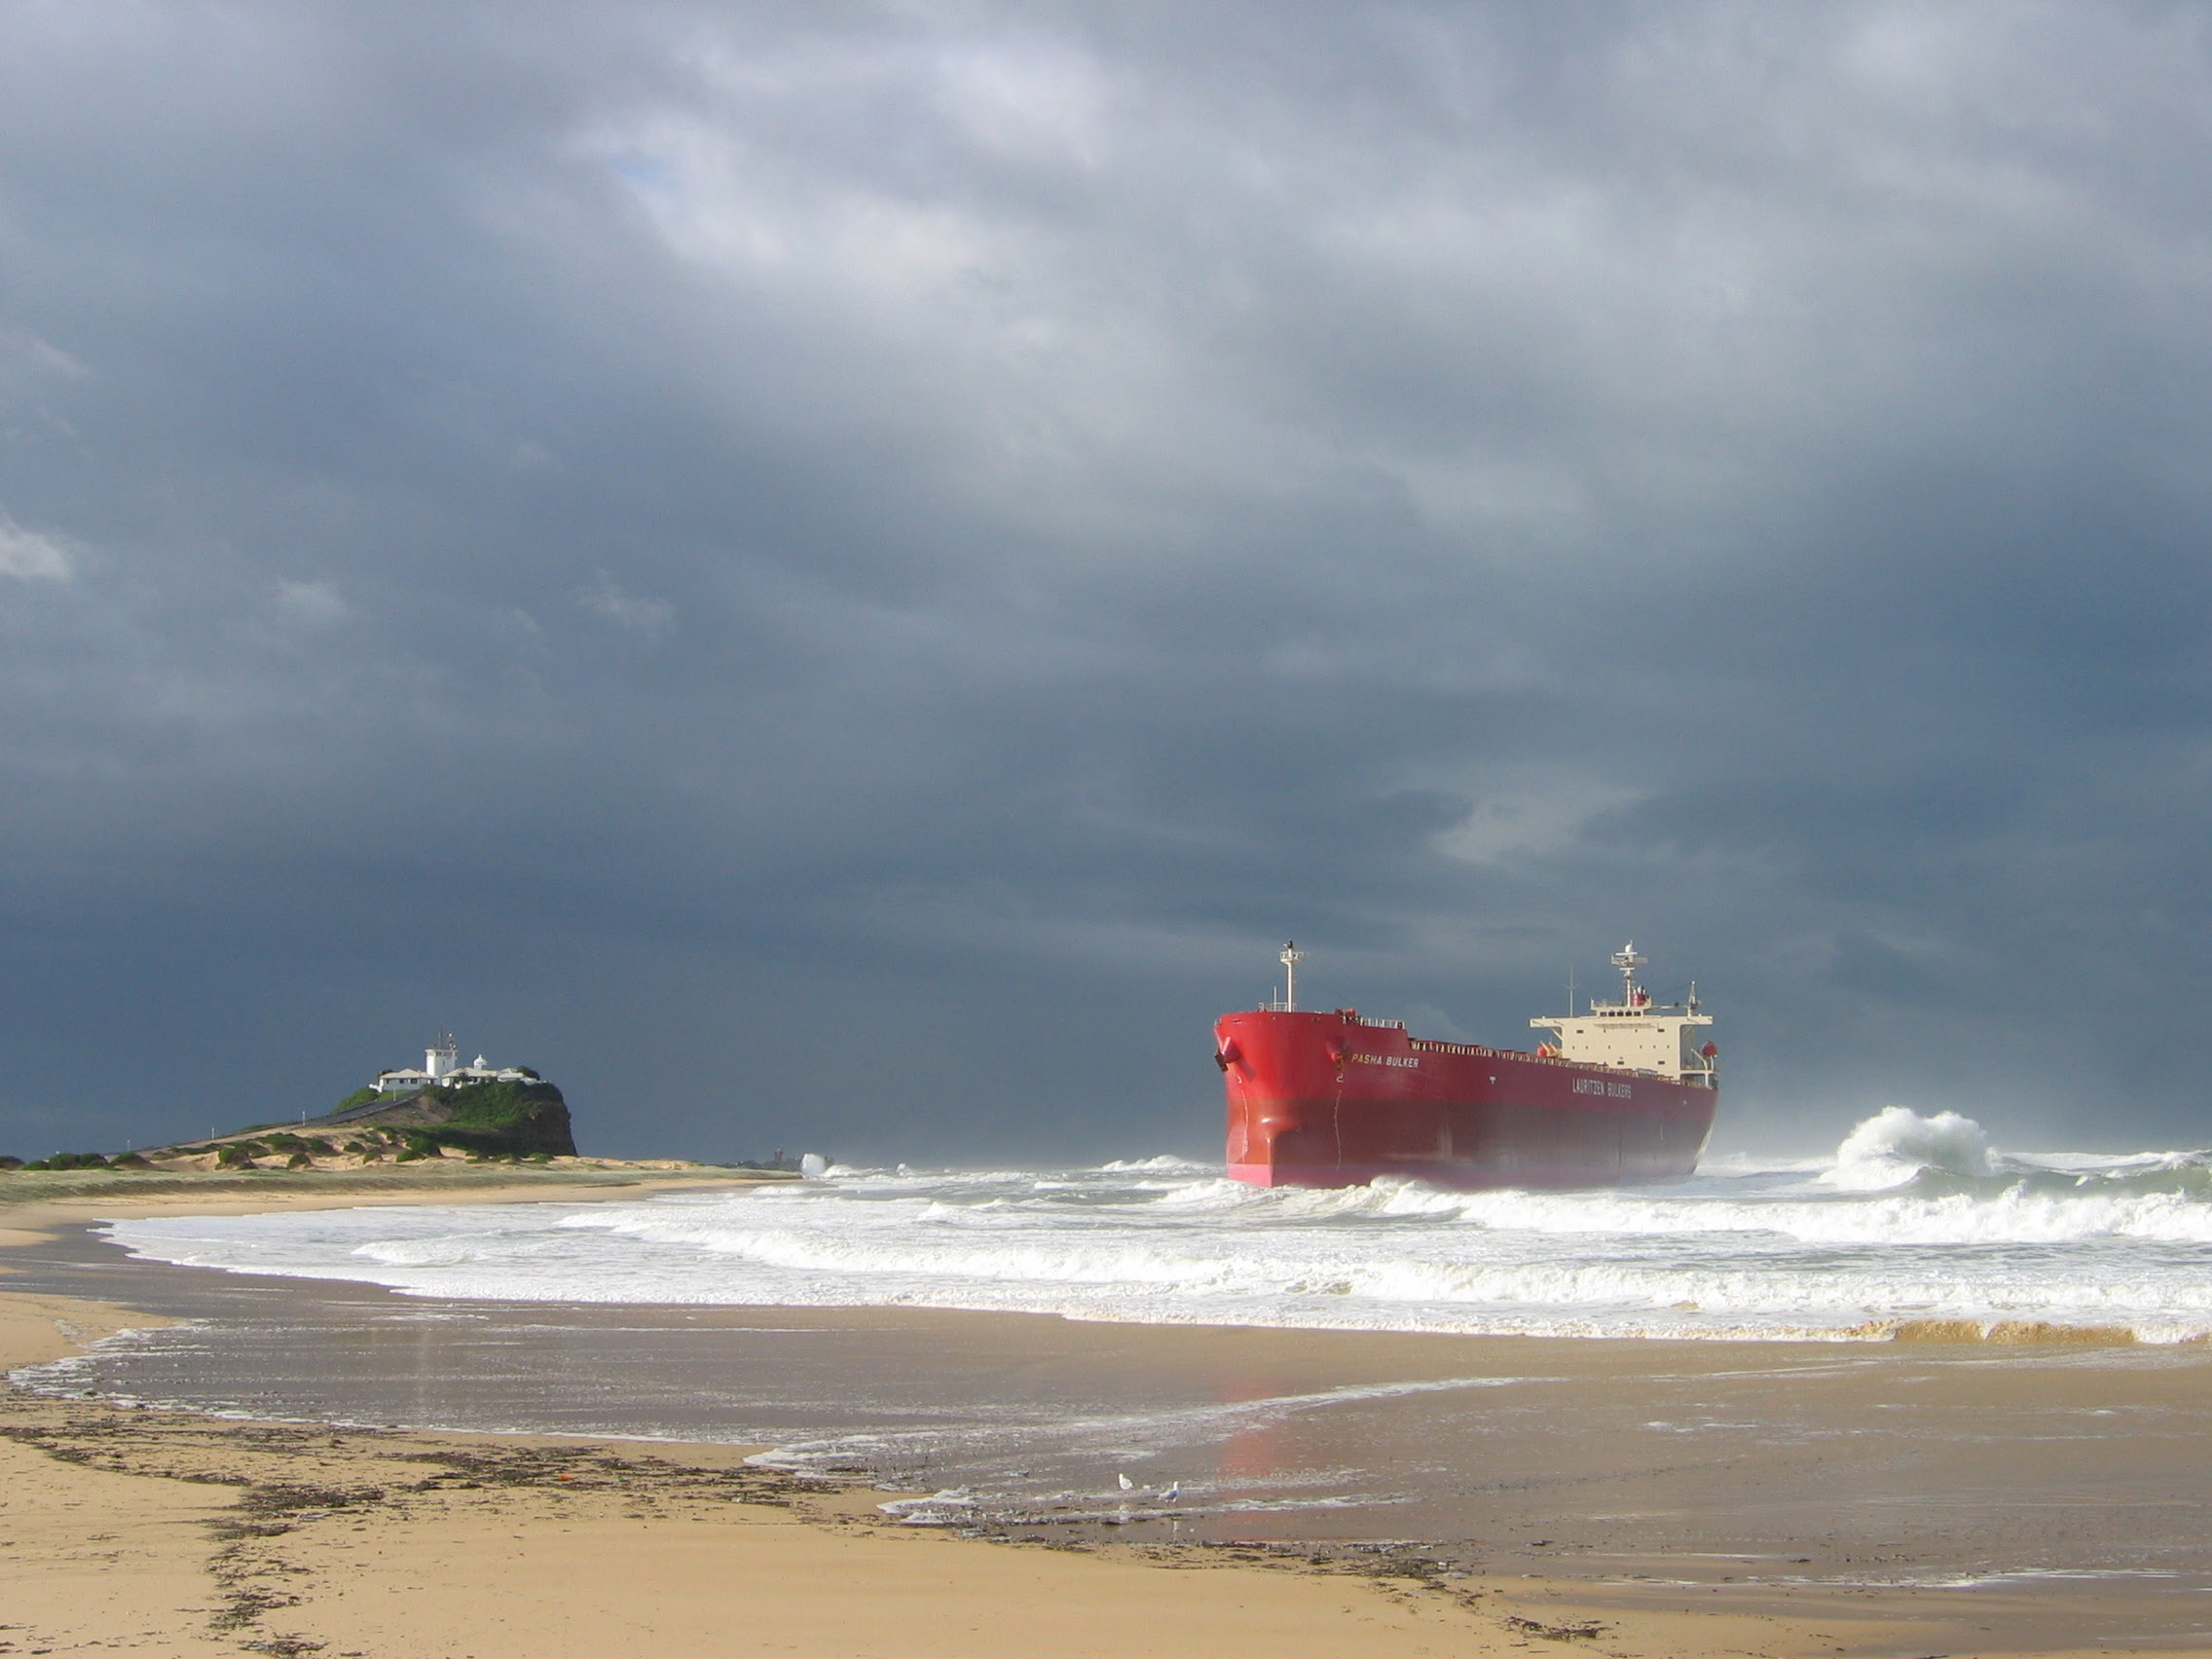 http://upload.wikimedia.org/wikipedia/commons/8/8b/Pasha_Bulker_grounded.jpg